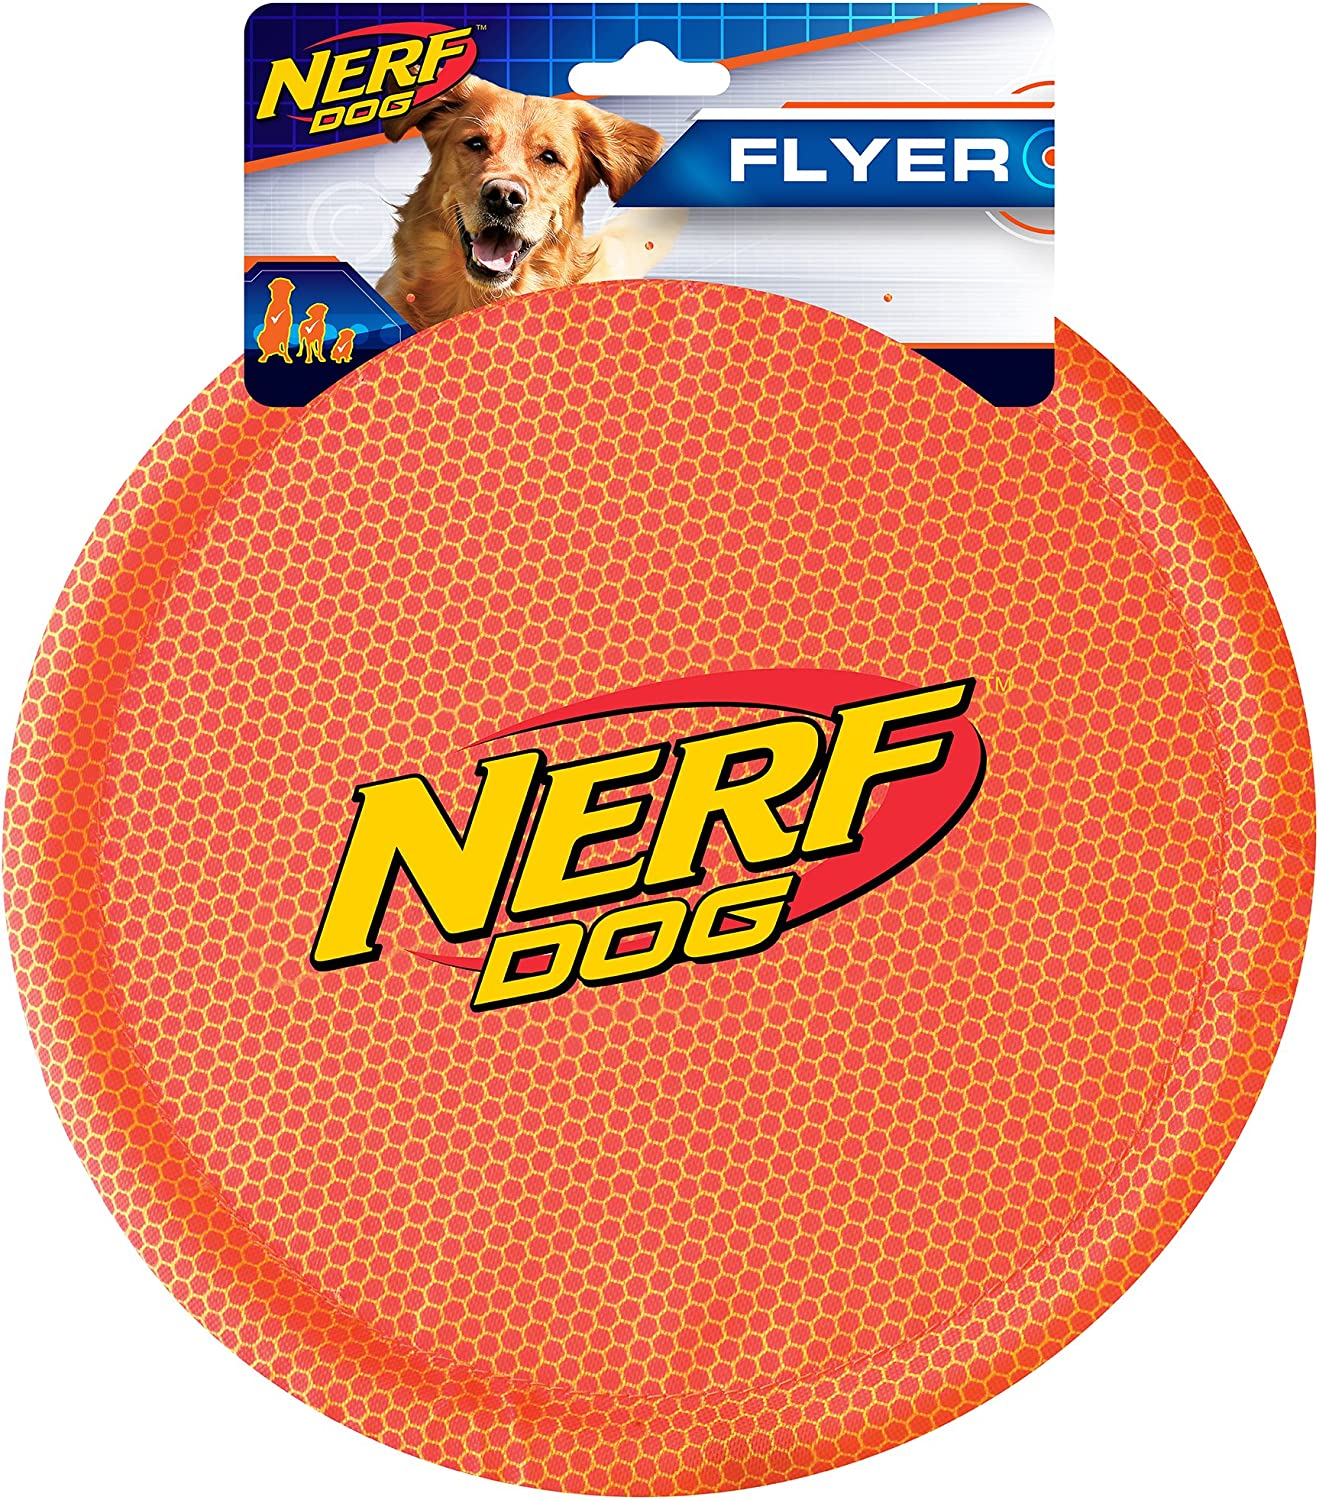 Nerf Dog Durable Nylon Dog Toys, made with Nerf Tough Material, Lightweight, Non-Toxic, BPA-Free, Assorted Toys